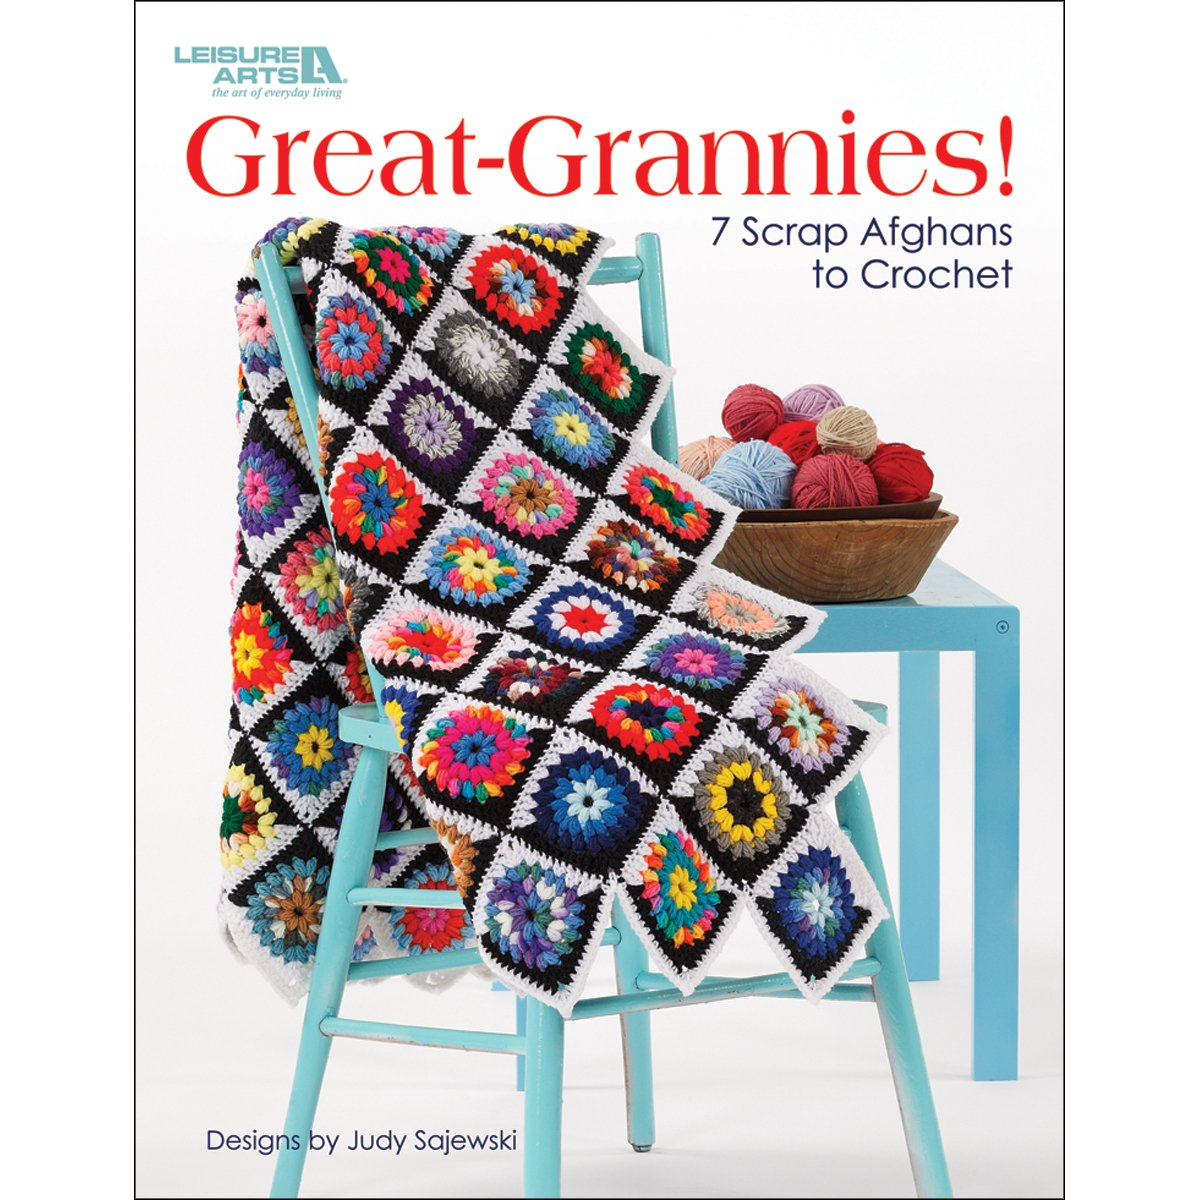 Great Grannies!: 7 Scrap Afghans to Crochet: Amazon.co.uk: Judy ...